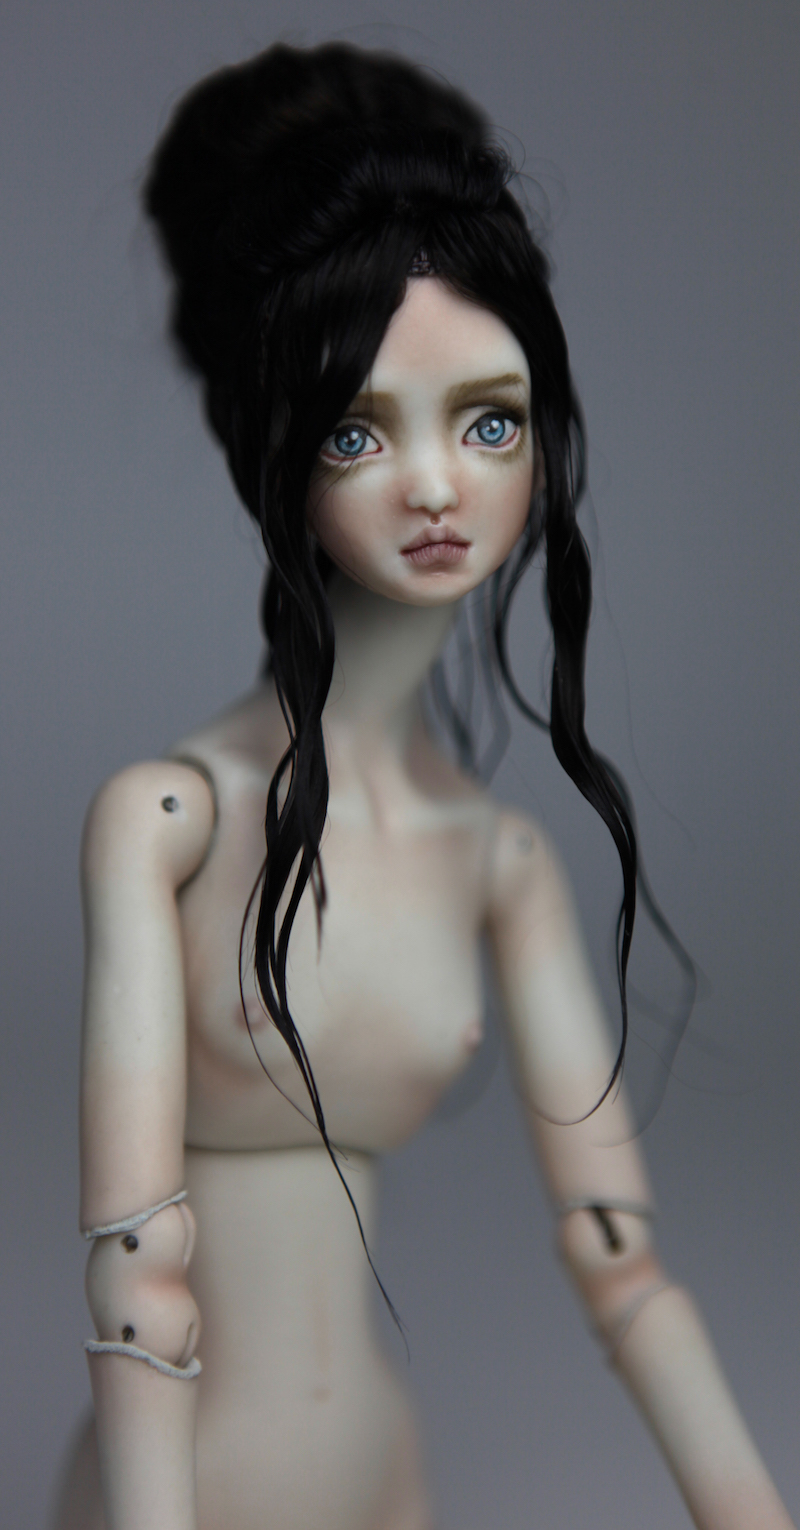 BJD Doll Ball Jointed Nude Doll Echo 2018 6 15 Nude Porcelain BJD Doll Echo